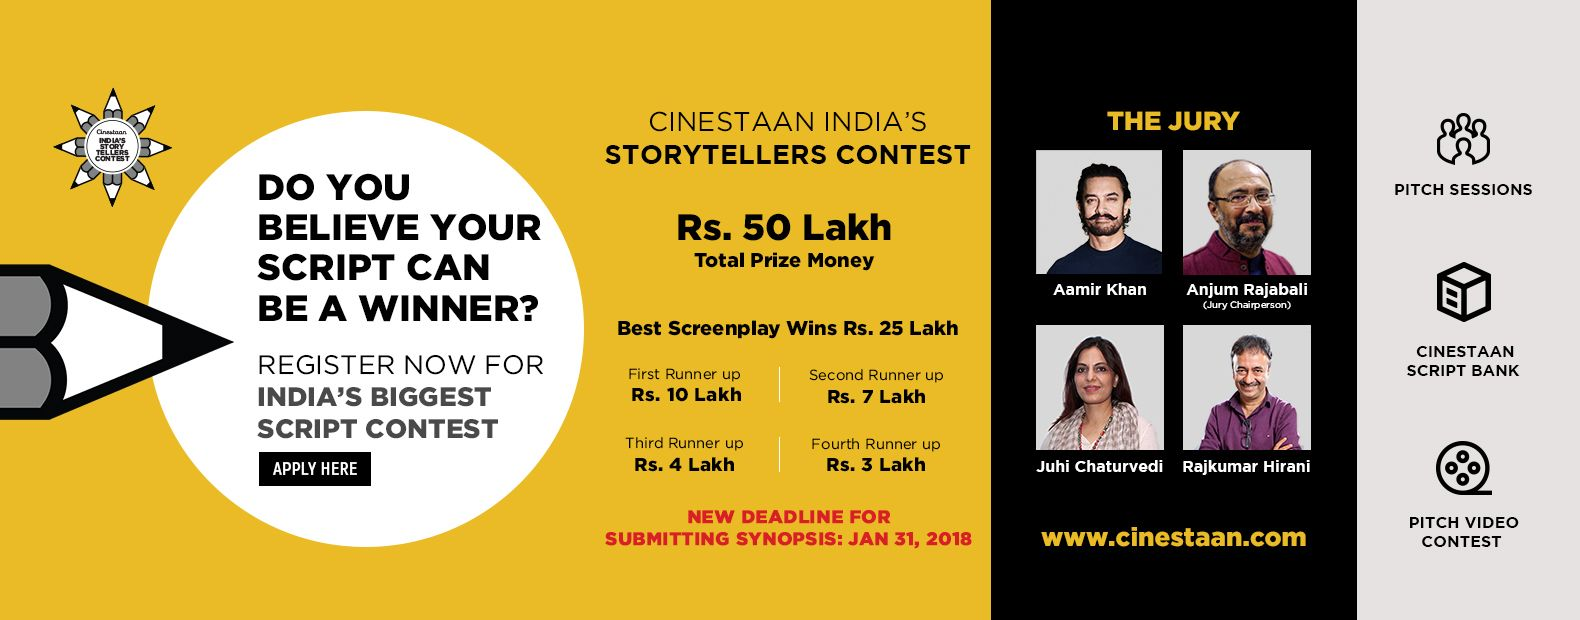 CINESTAAN INDIA'S STORYTELLERS CONTEST, RS. 50 Lakh Total Prize Money